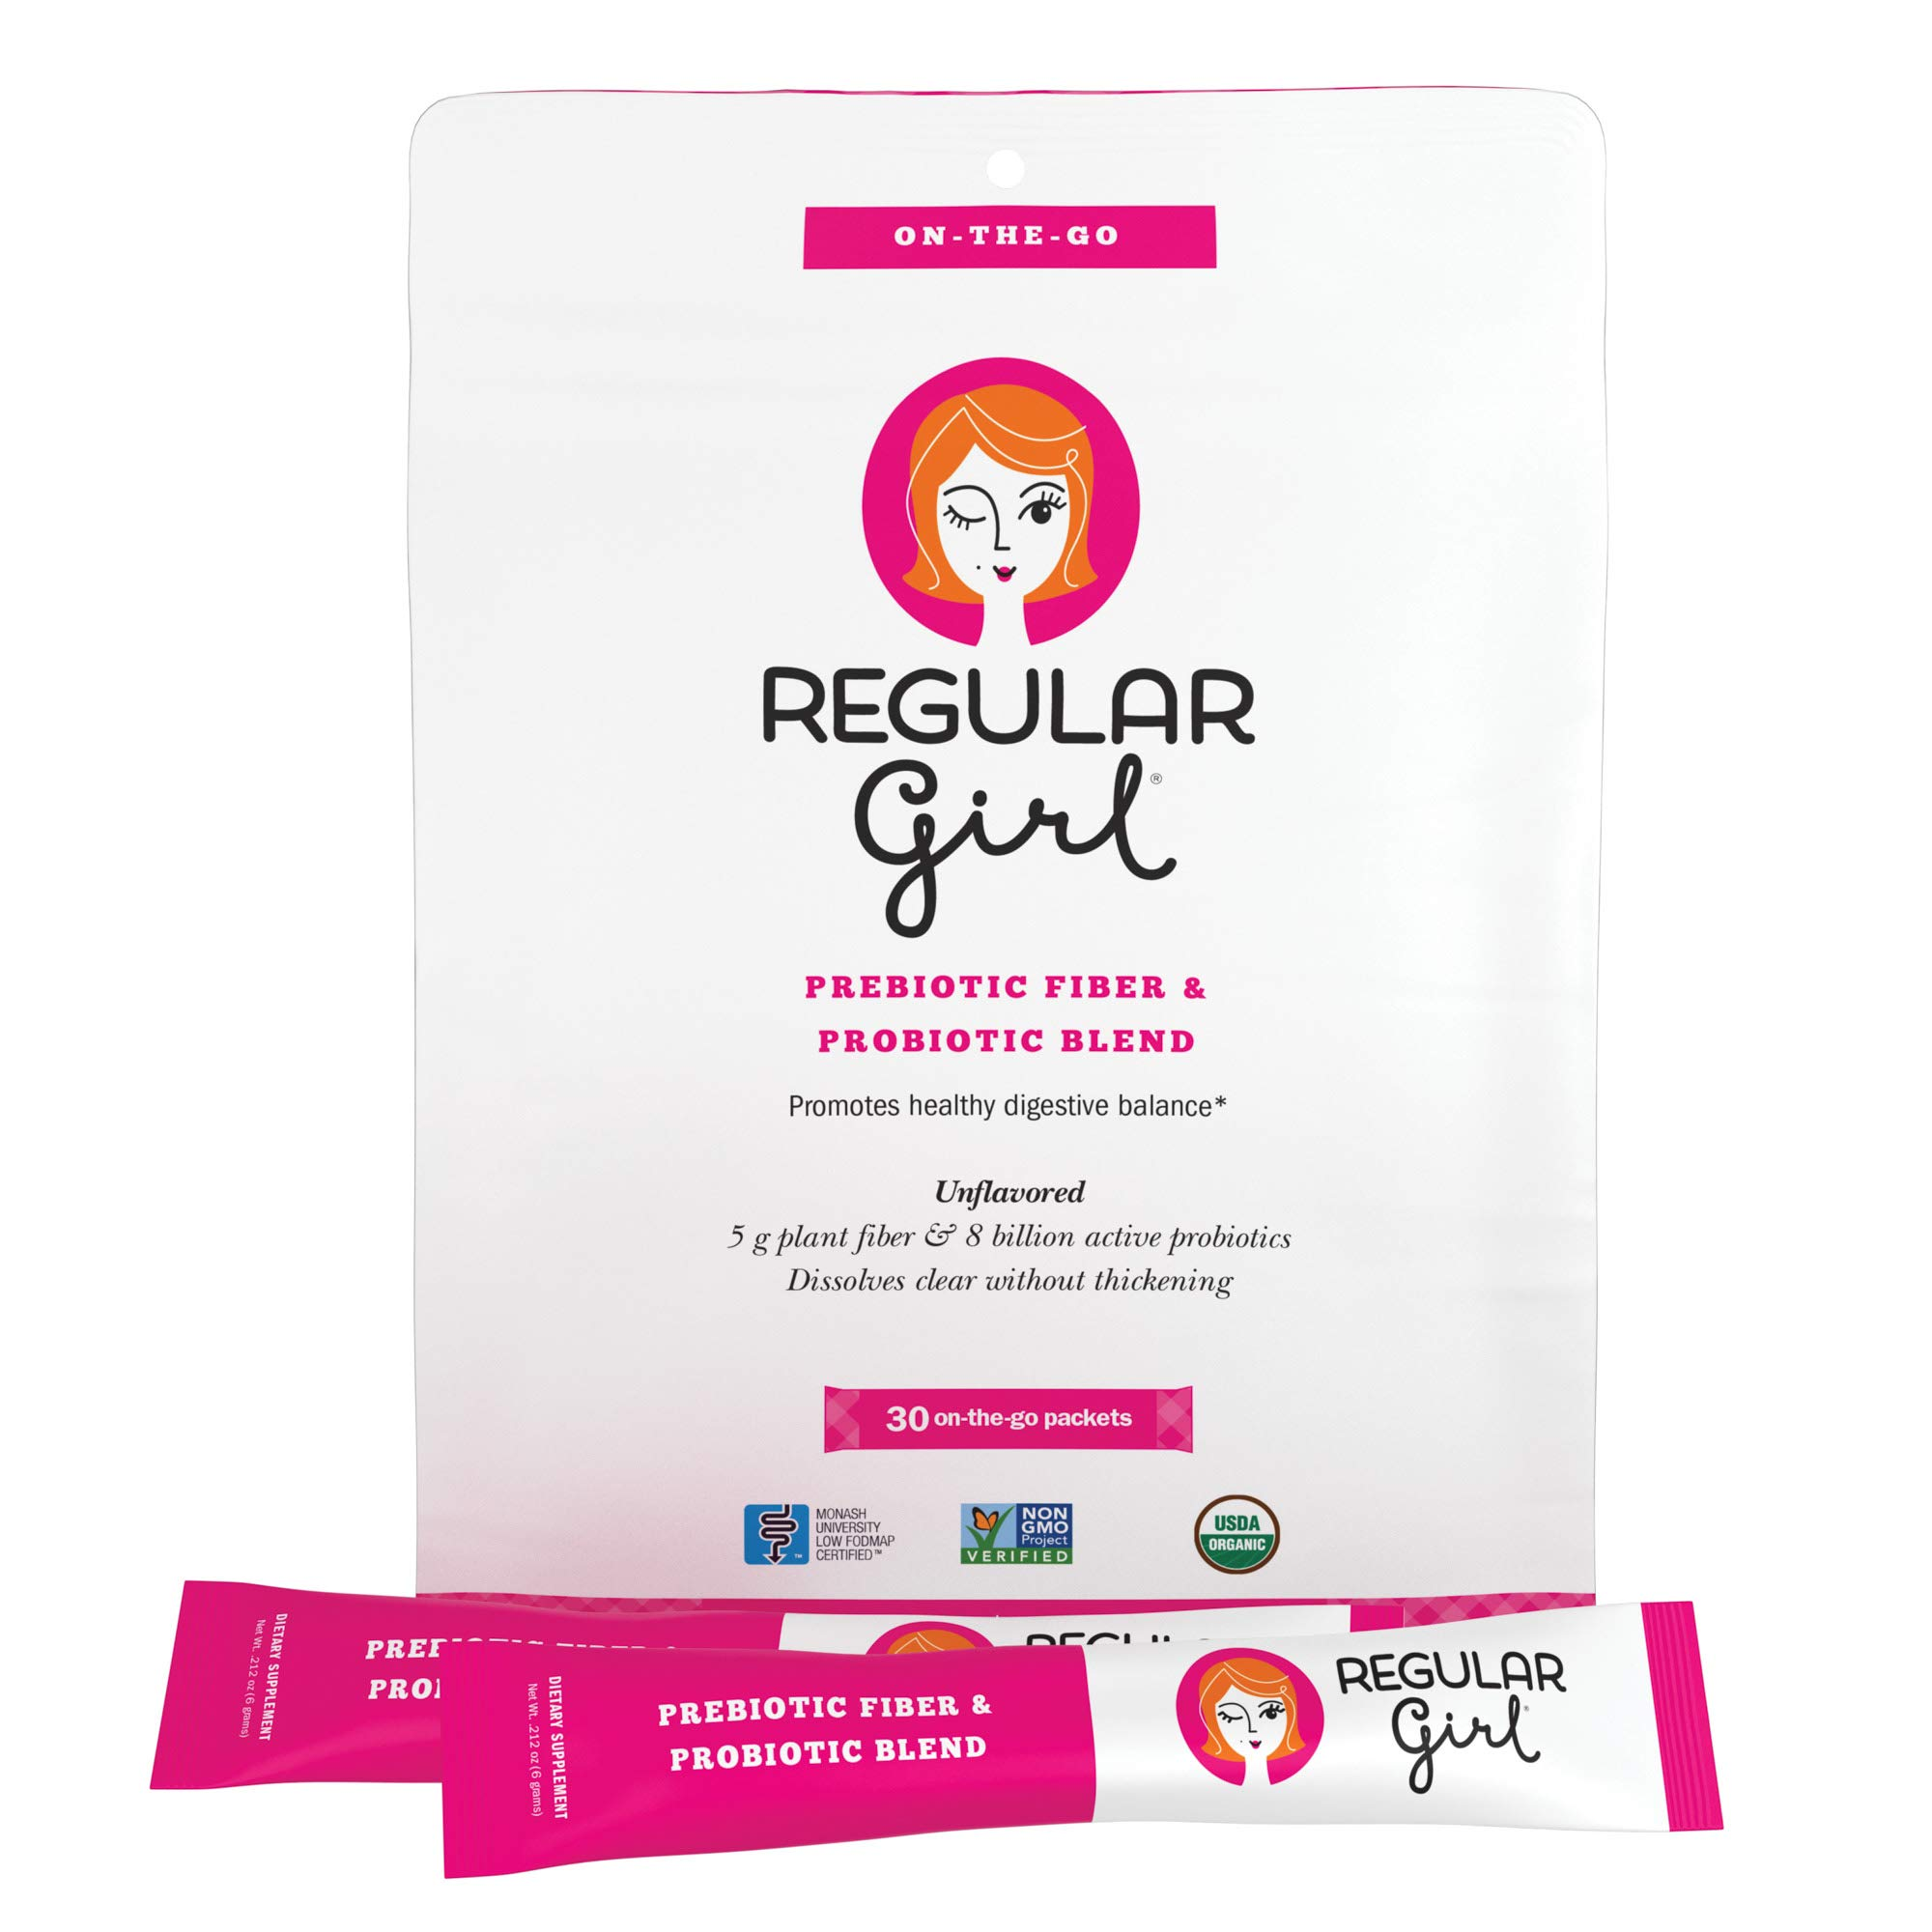 Regular Girl - Organic On The Go Powder, Low FODMAP Prebiotic Guar Fiber and Probiotic Support for Comfortable Digestion, 30 Packets